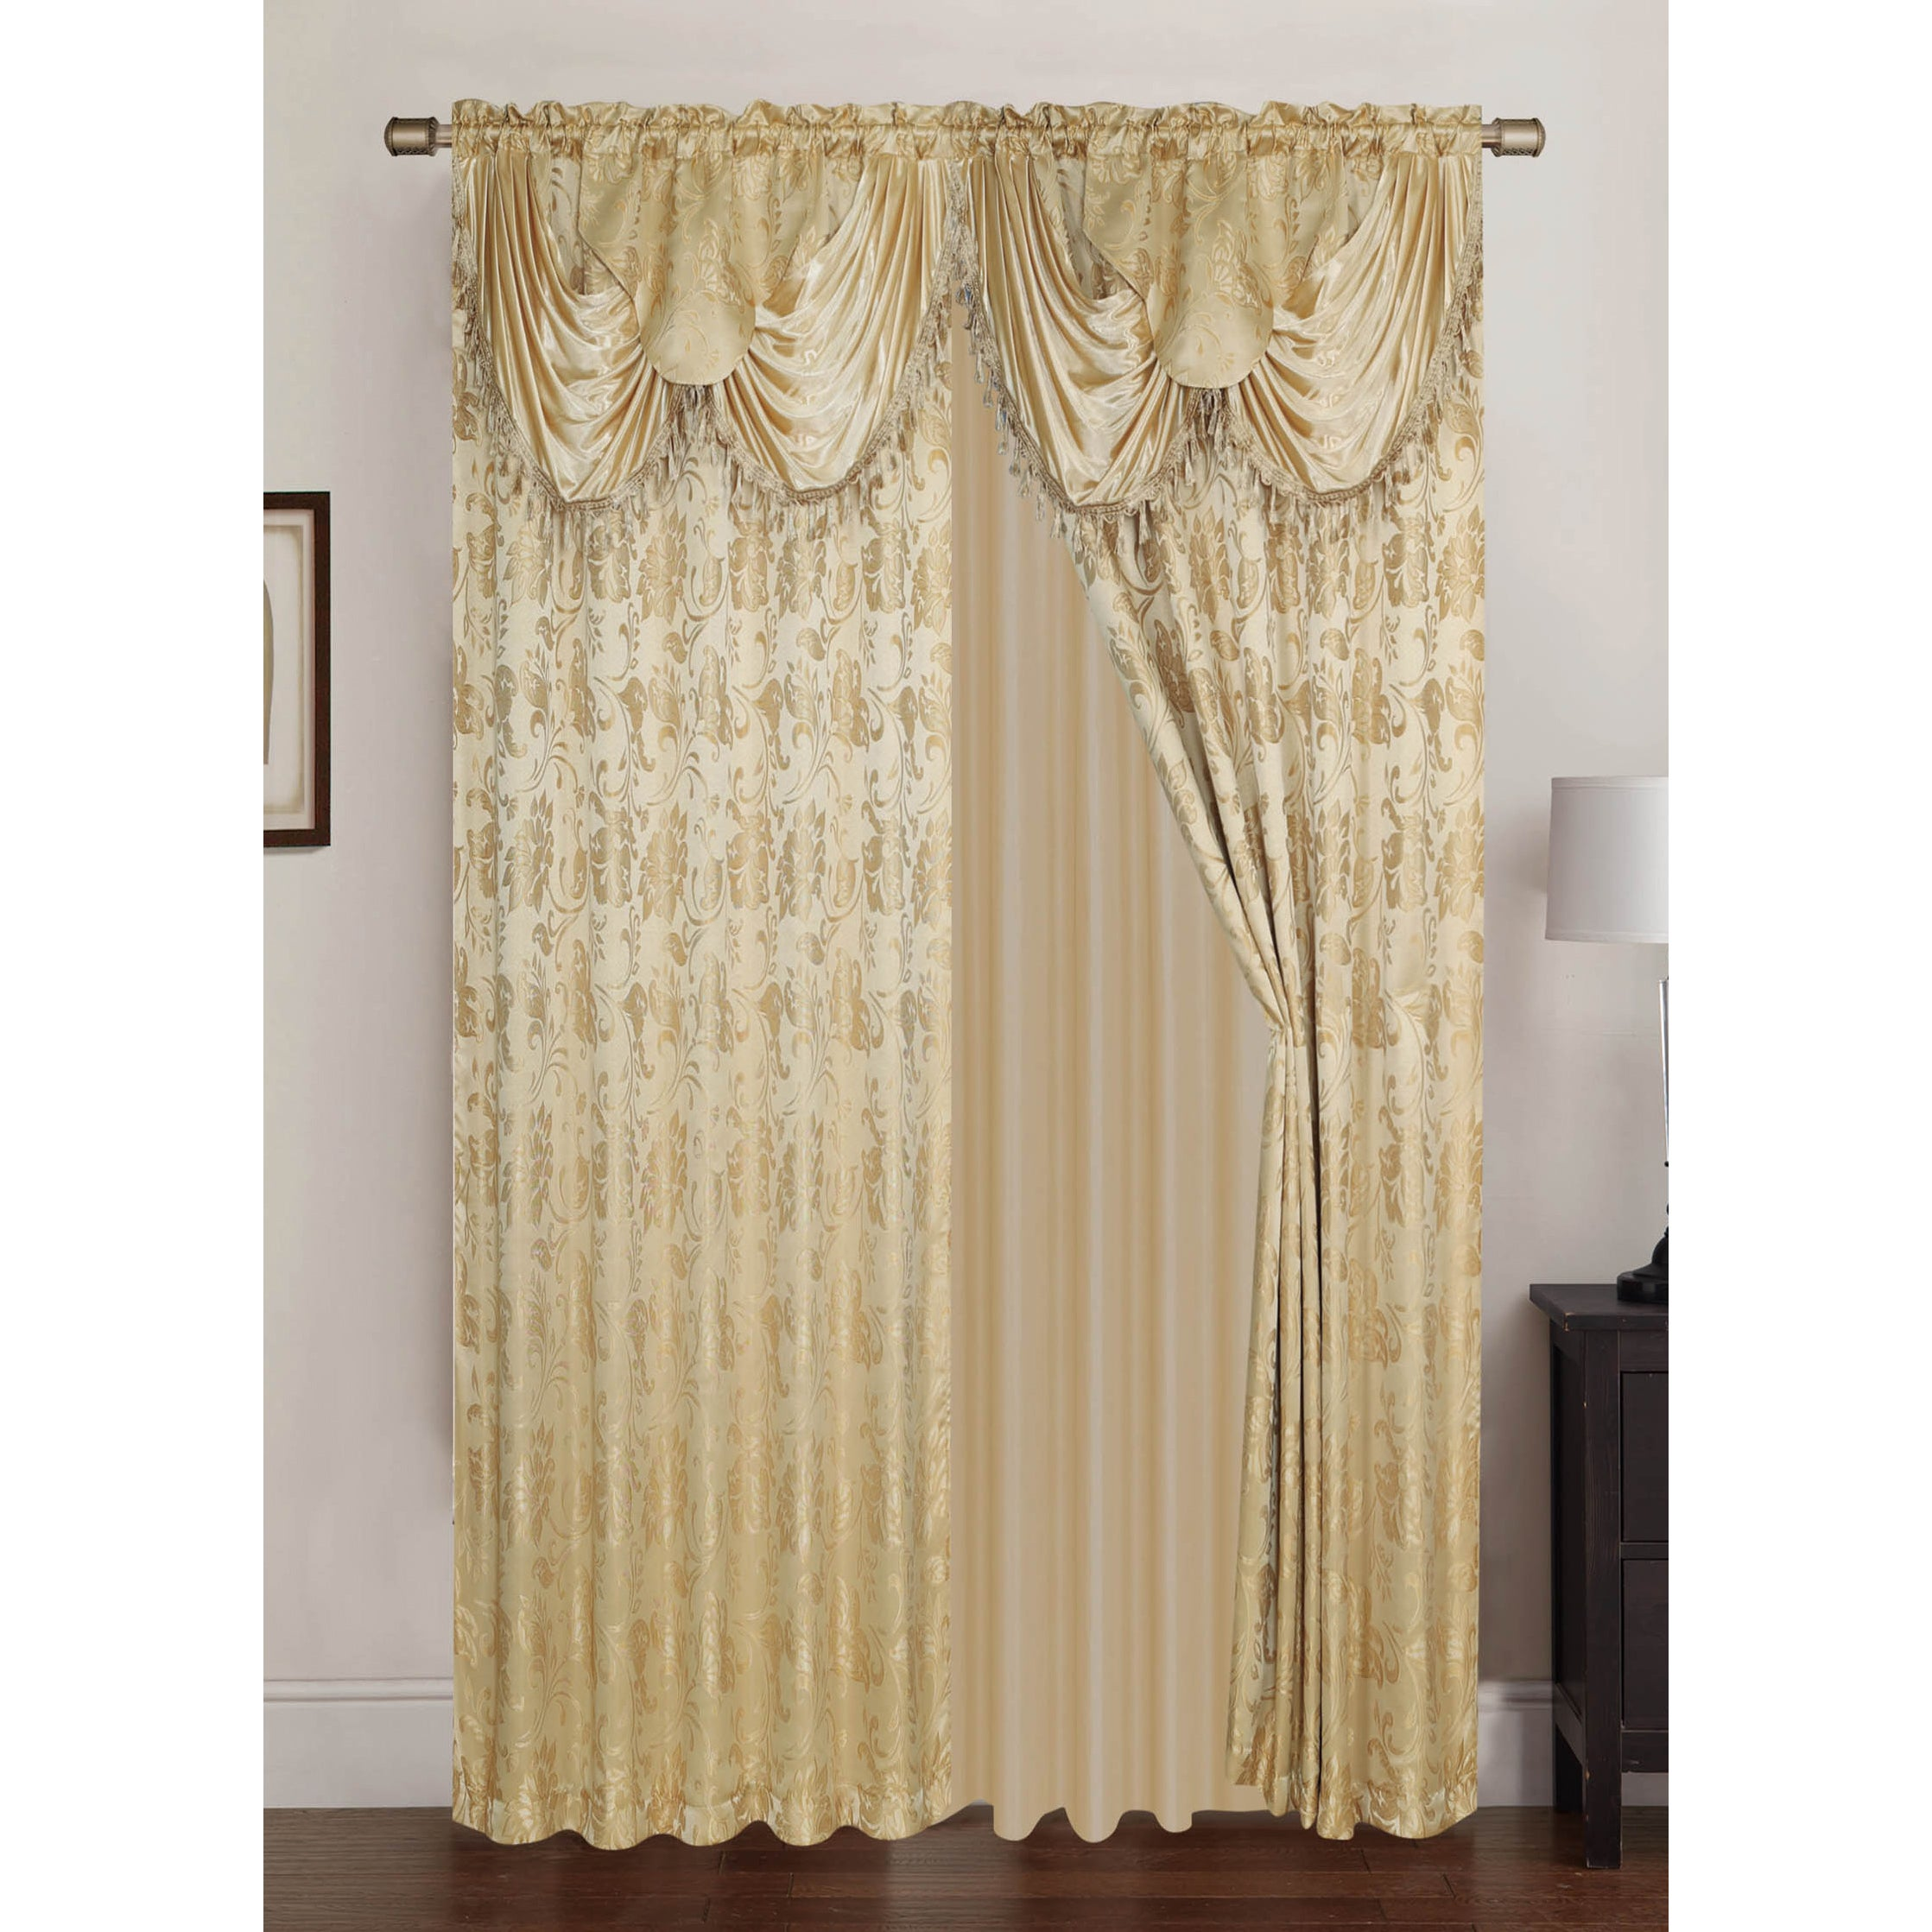 inch rod window curtain and with captivating decorating rods unique curtains gorgeous interior for home colors your shower